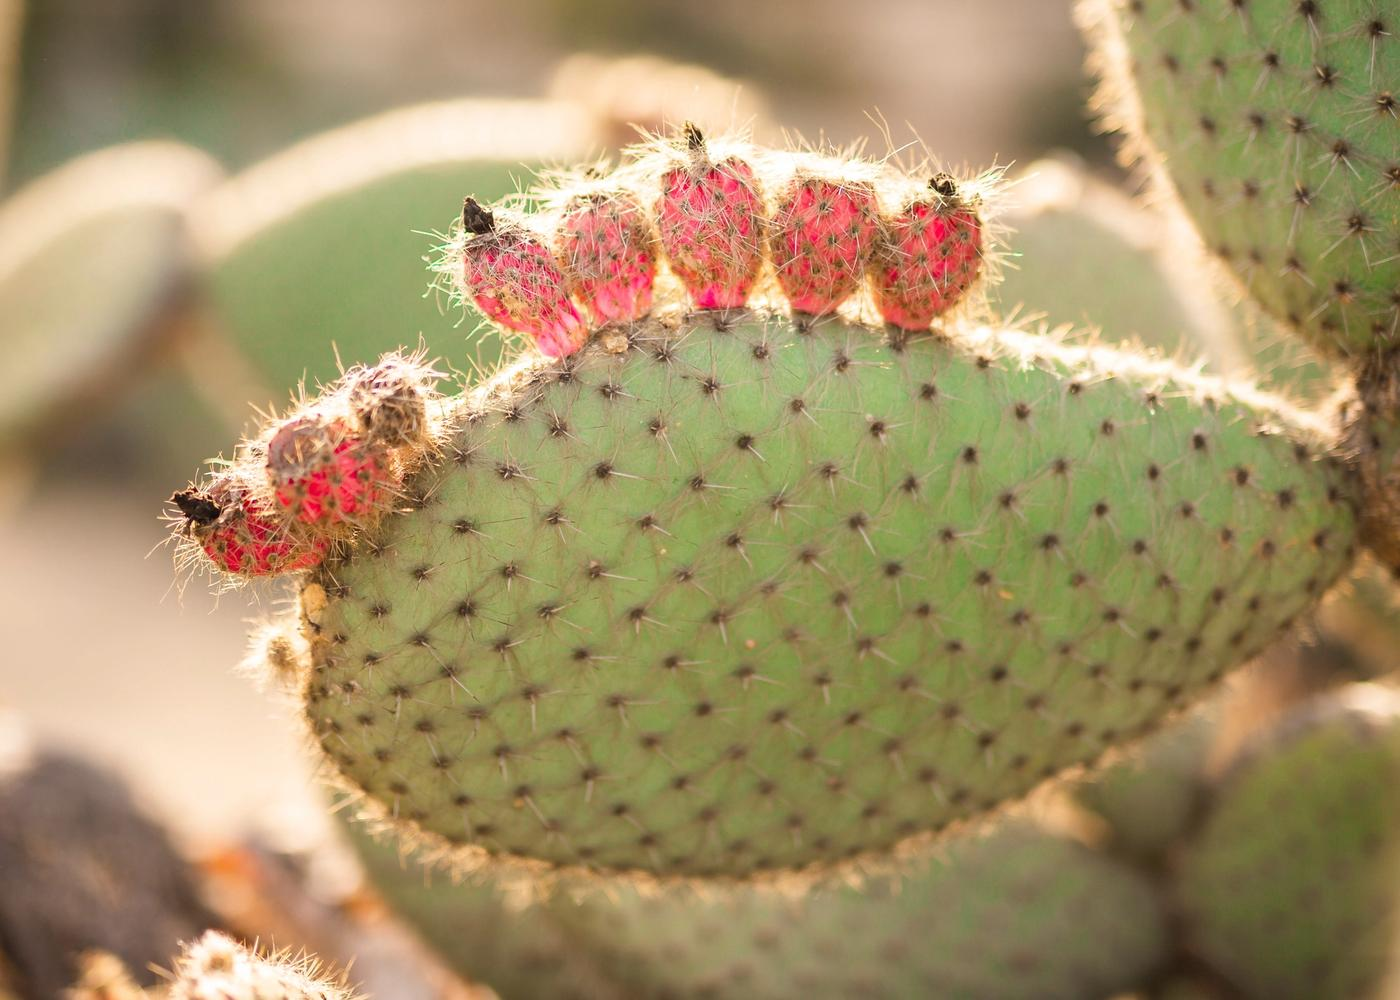 Prickly Pear Oil: Skin Benefits and Much More